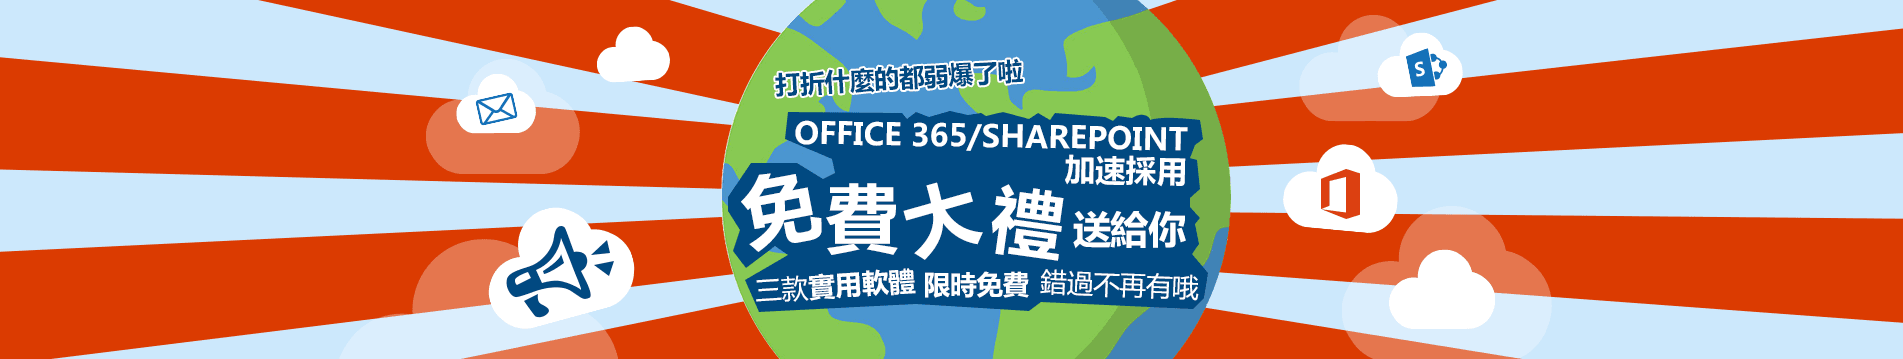 Office 365 / SharePoint 加速採用